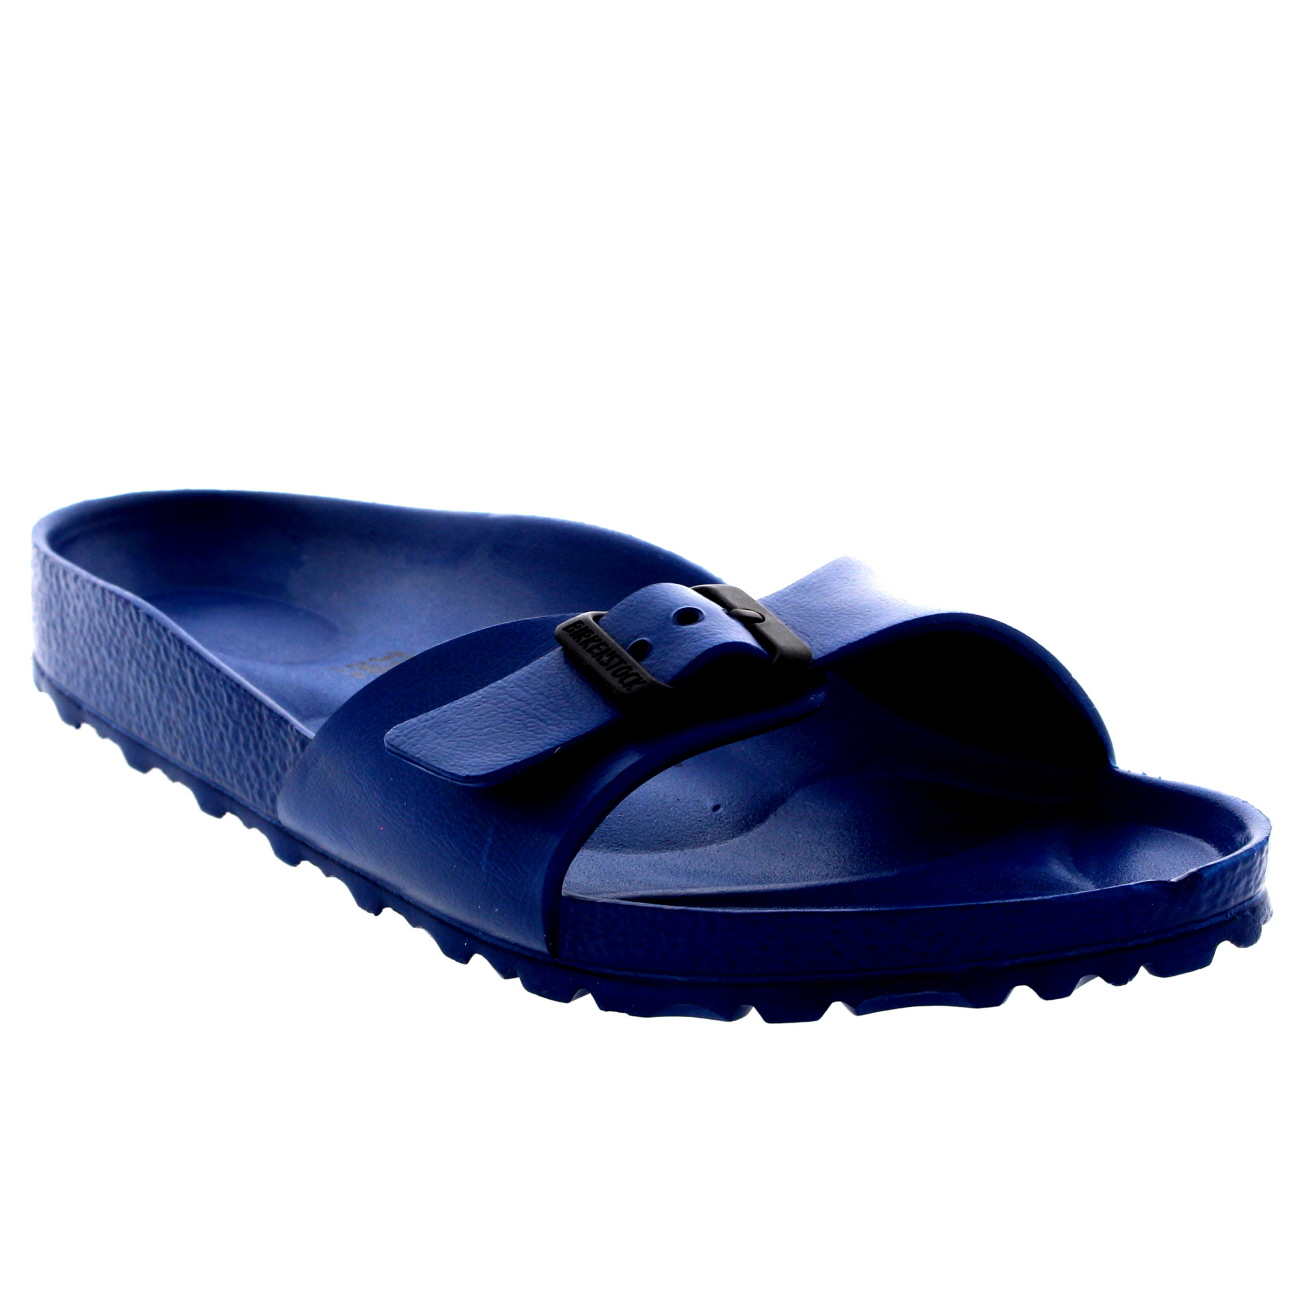 6ea8e36a46b2 Details about Unisex Adults Birkenstock Madrid EVA Beach Slides Summer Mule  Sandals US 5-12